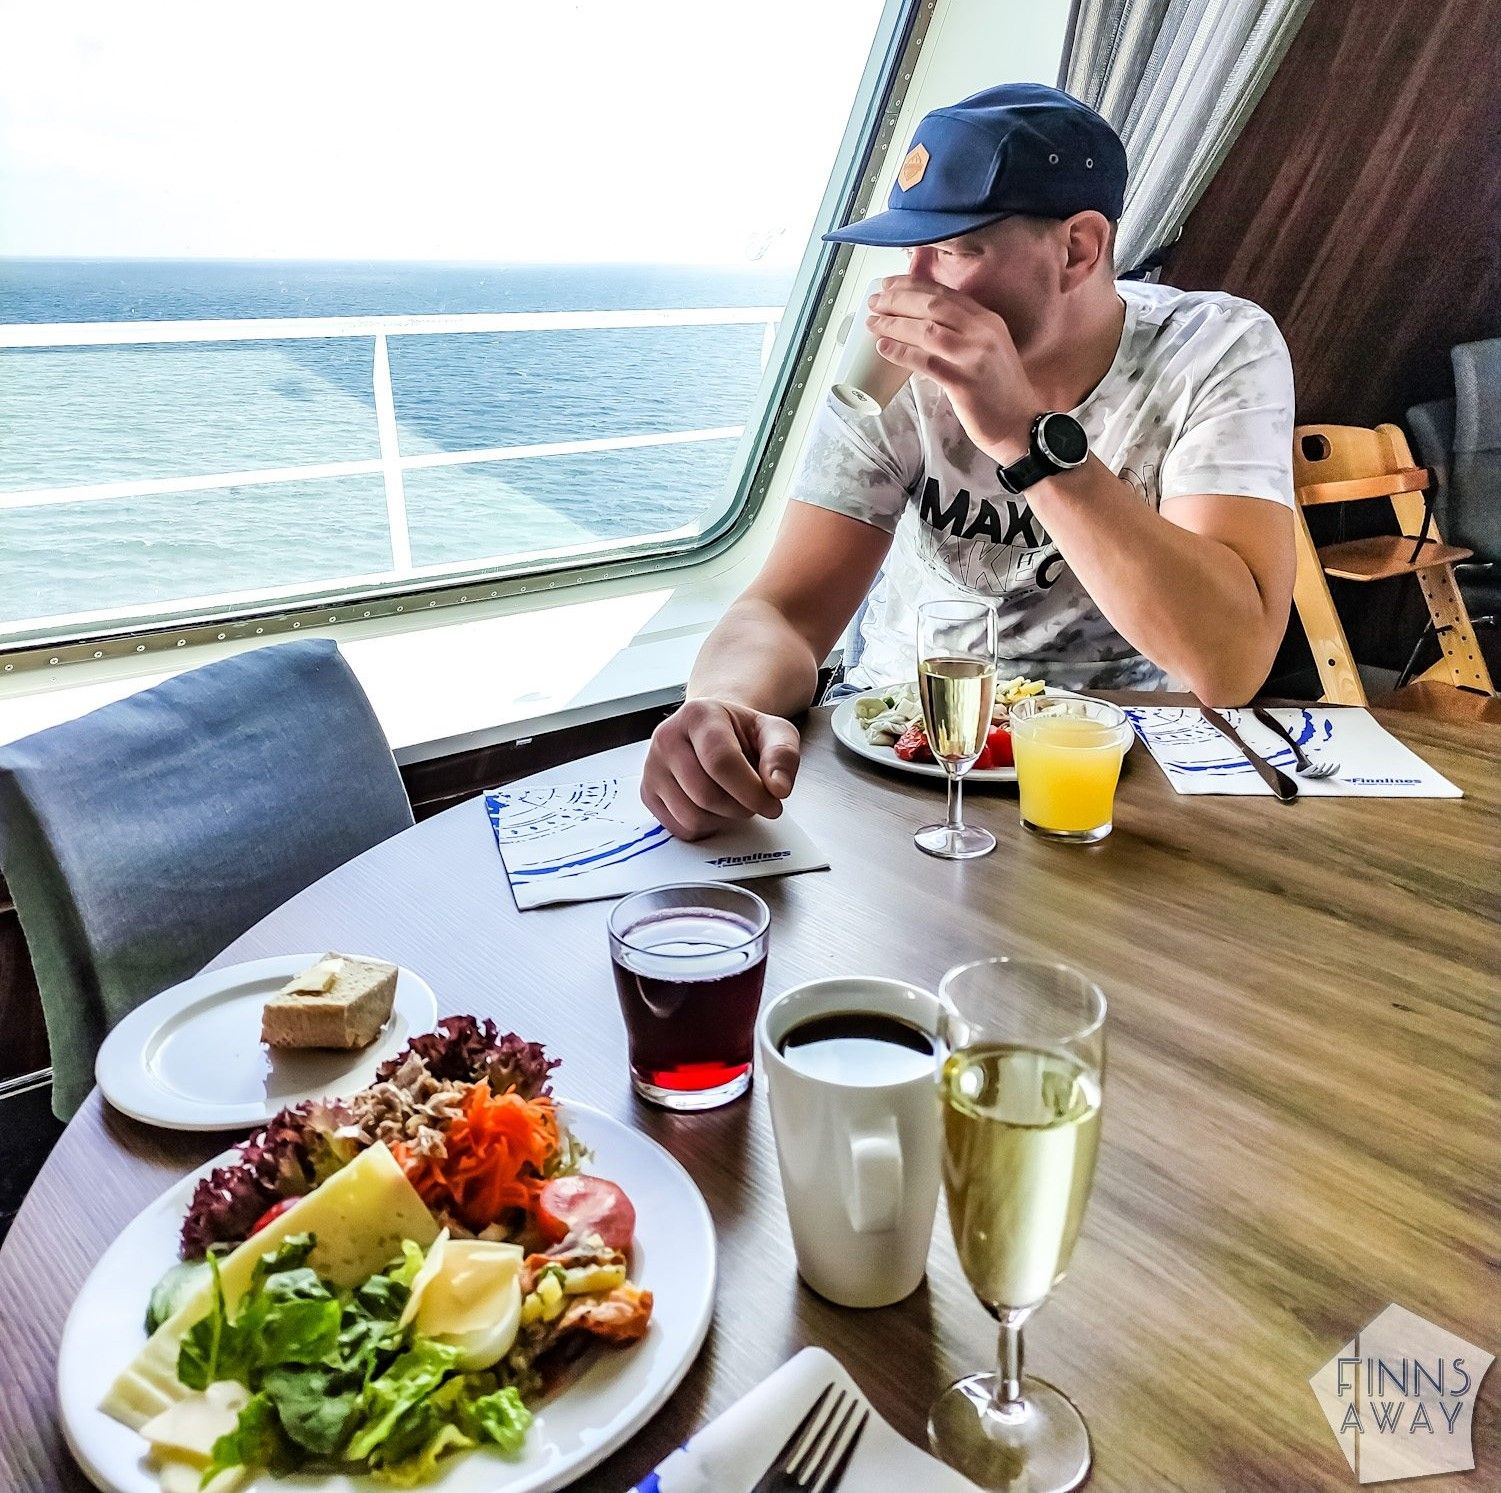 Crossing the Baltic Sea with Finnlines from Travemünde in Germany to Helsinki in Finland   FinnsAway Travel Blog